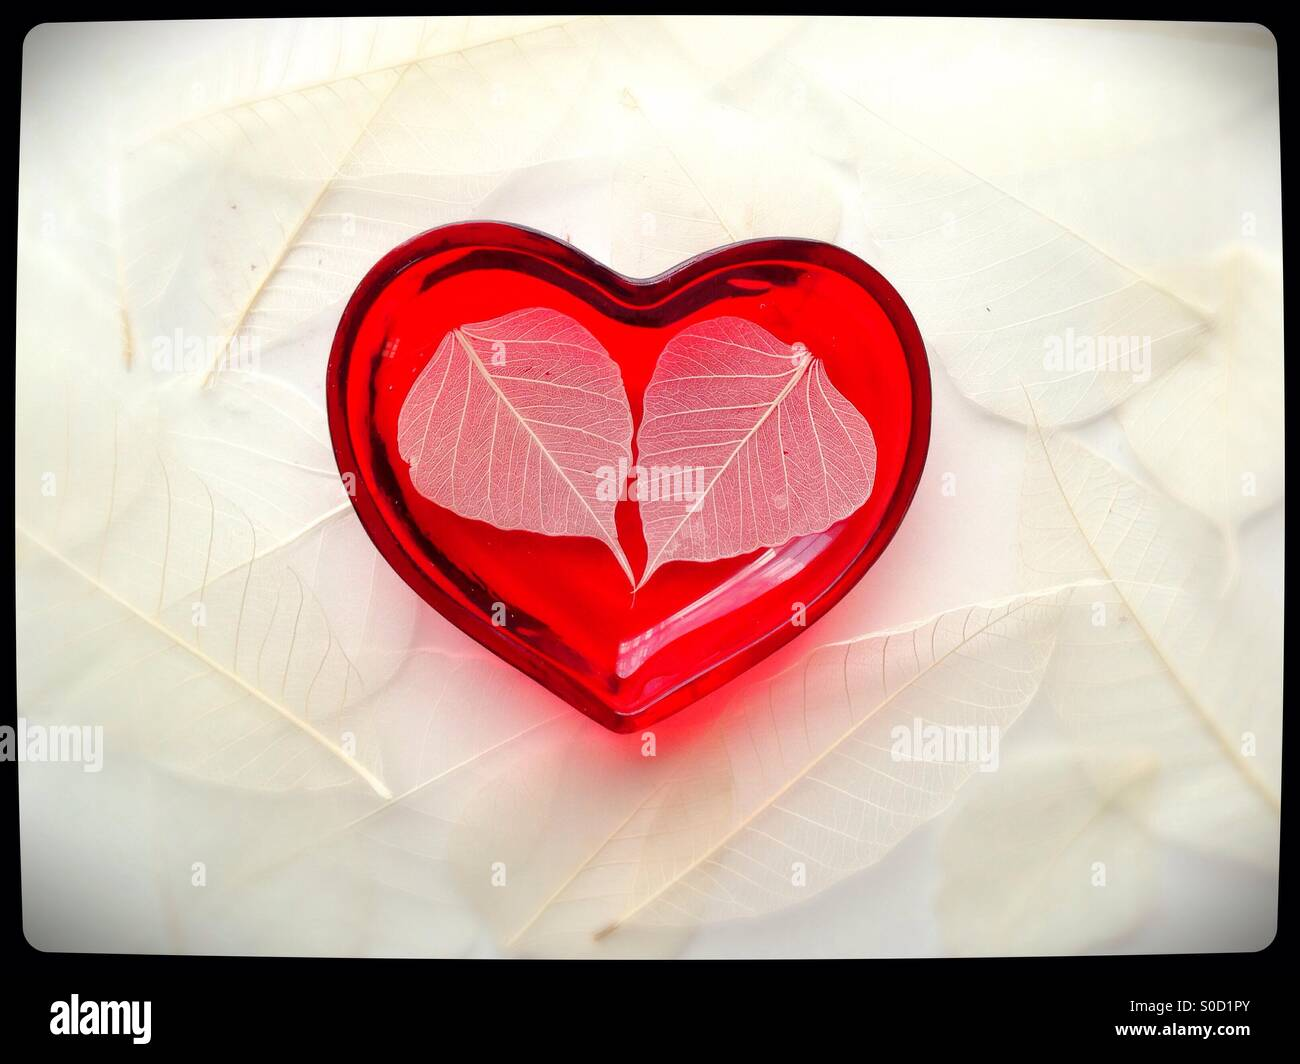 Two white leaves in a heart shaped bowl surrounded by other leaves. - Stock Image